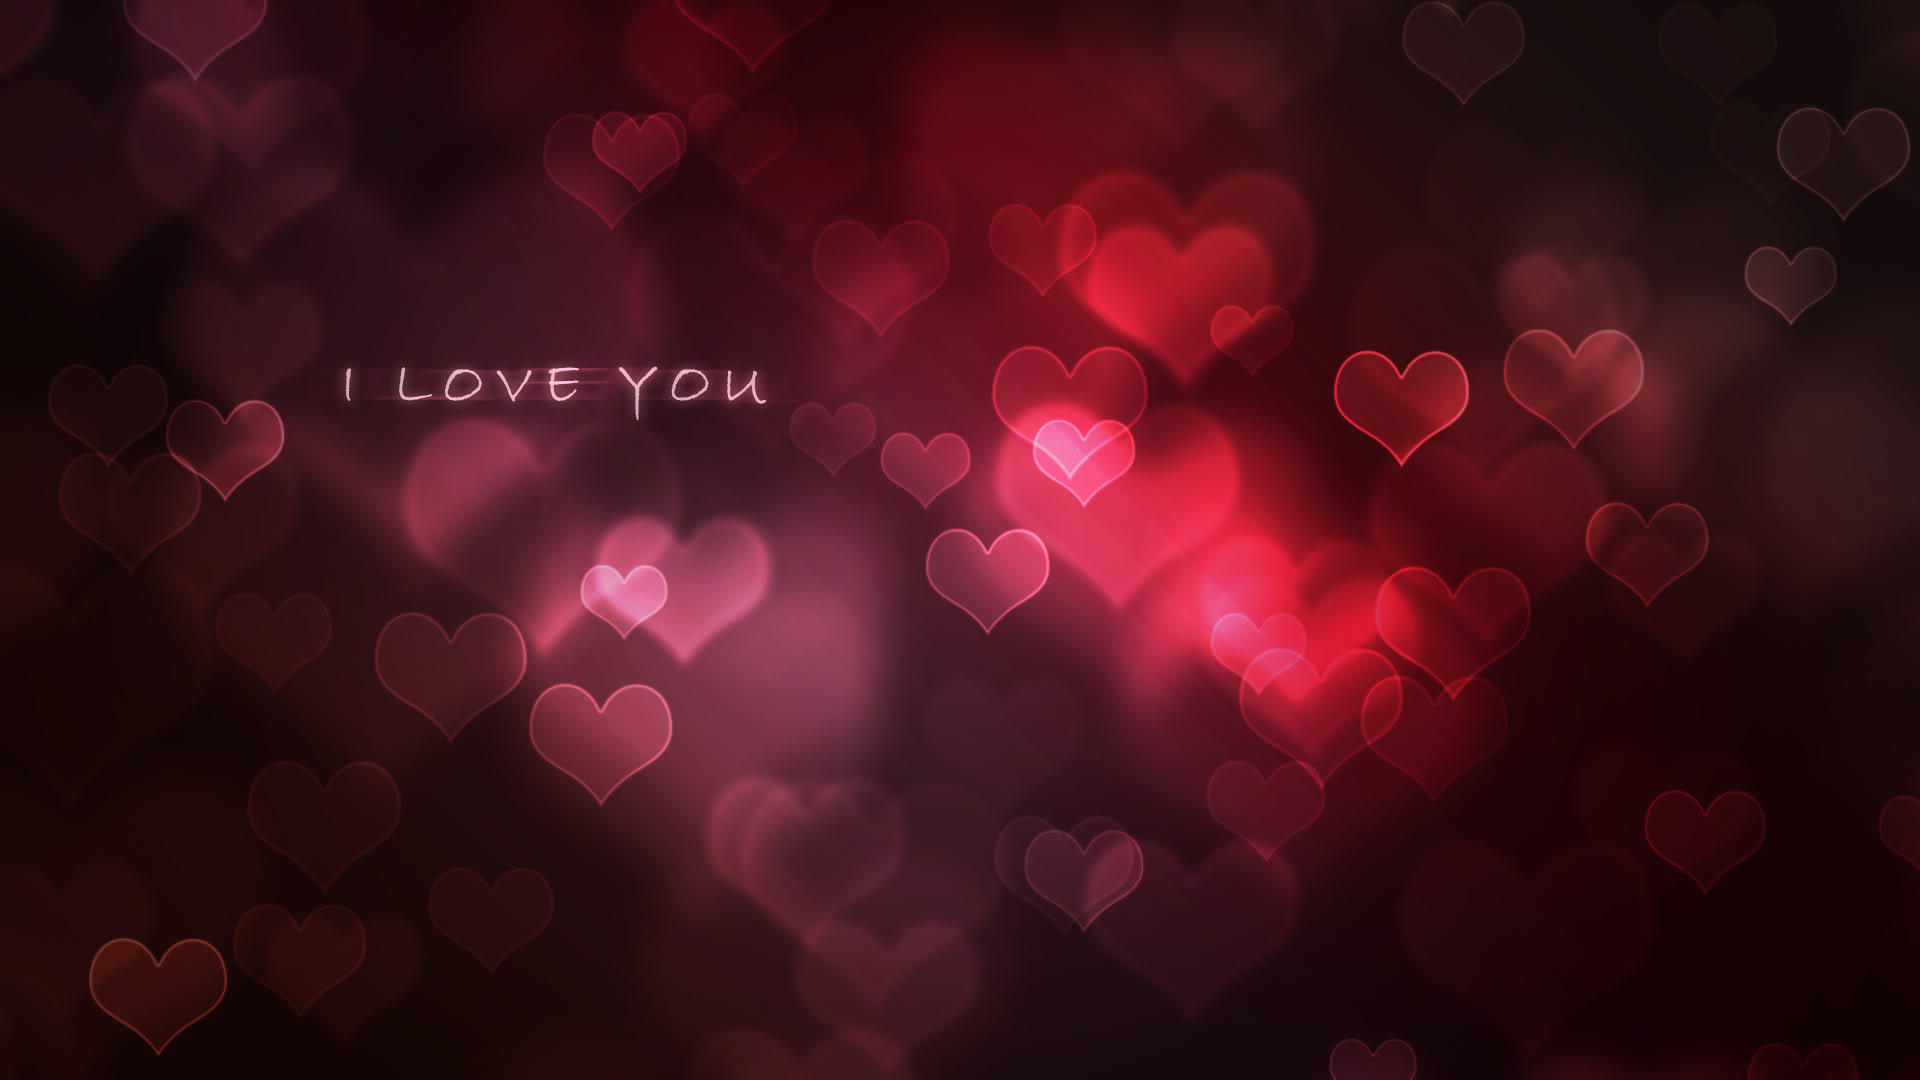 Awesome Love Backgrounds 18163 1920x1080 px HDWallSourcecom 1920x1080